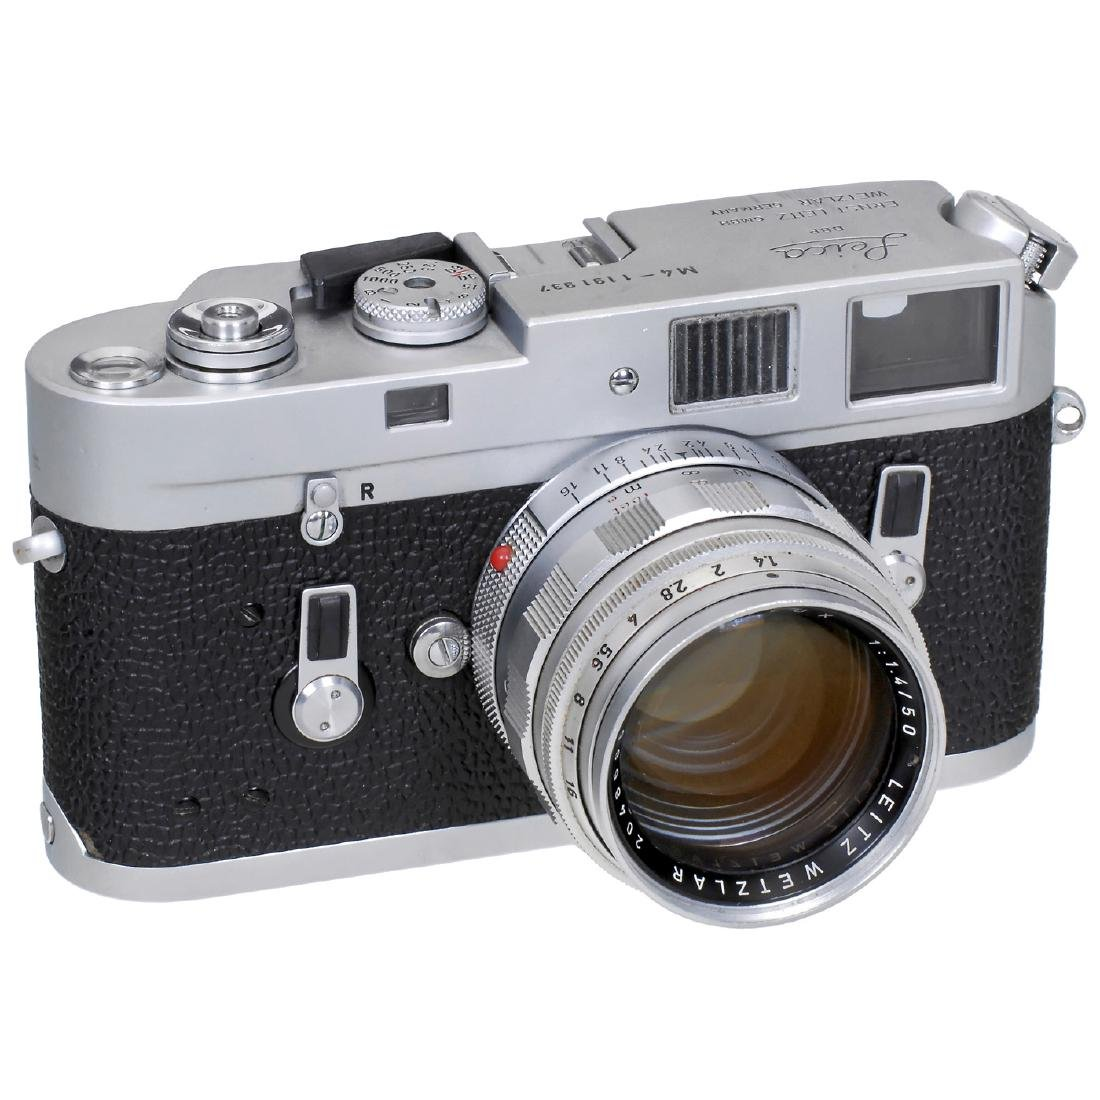 Leica M4 with Summilux 1,4/50, 1969